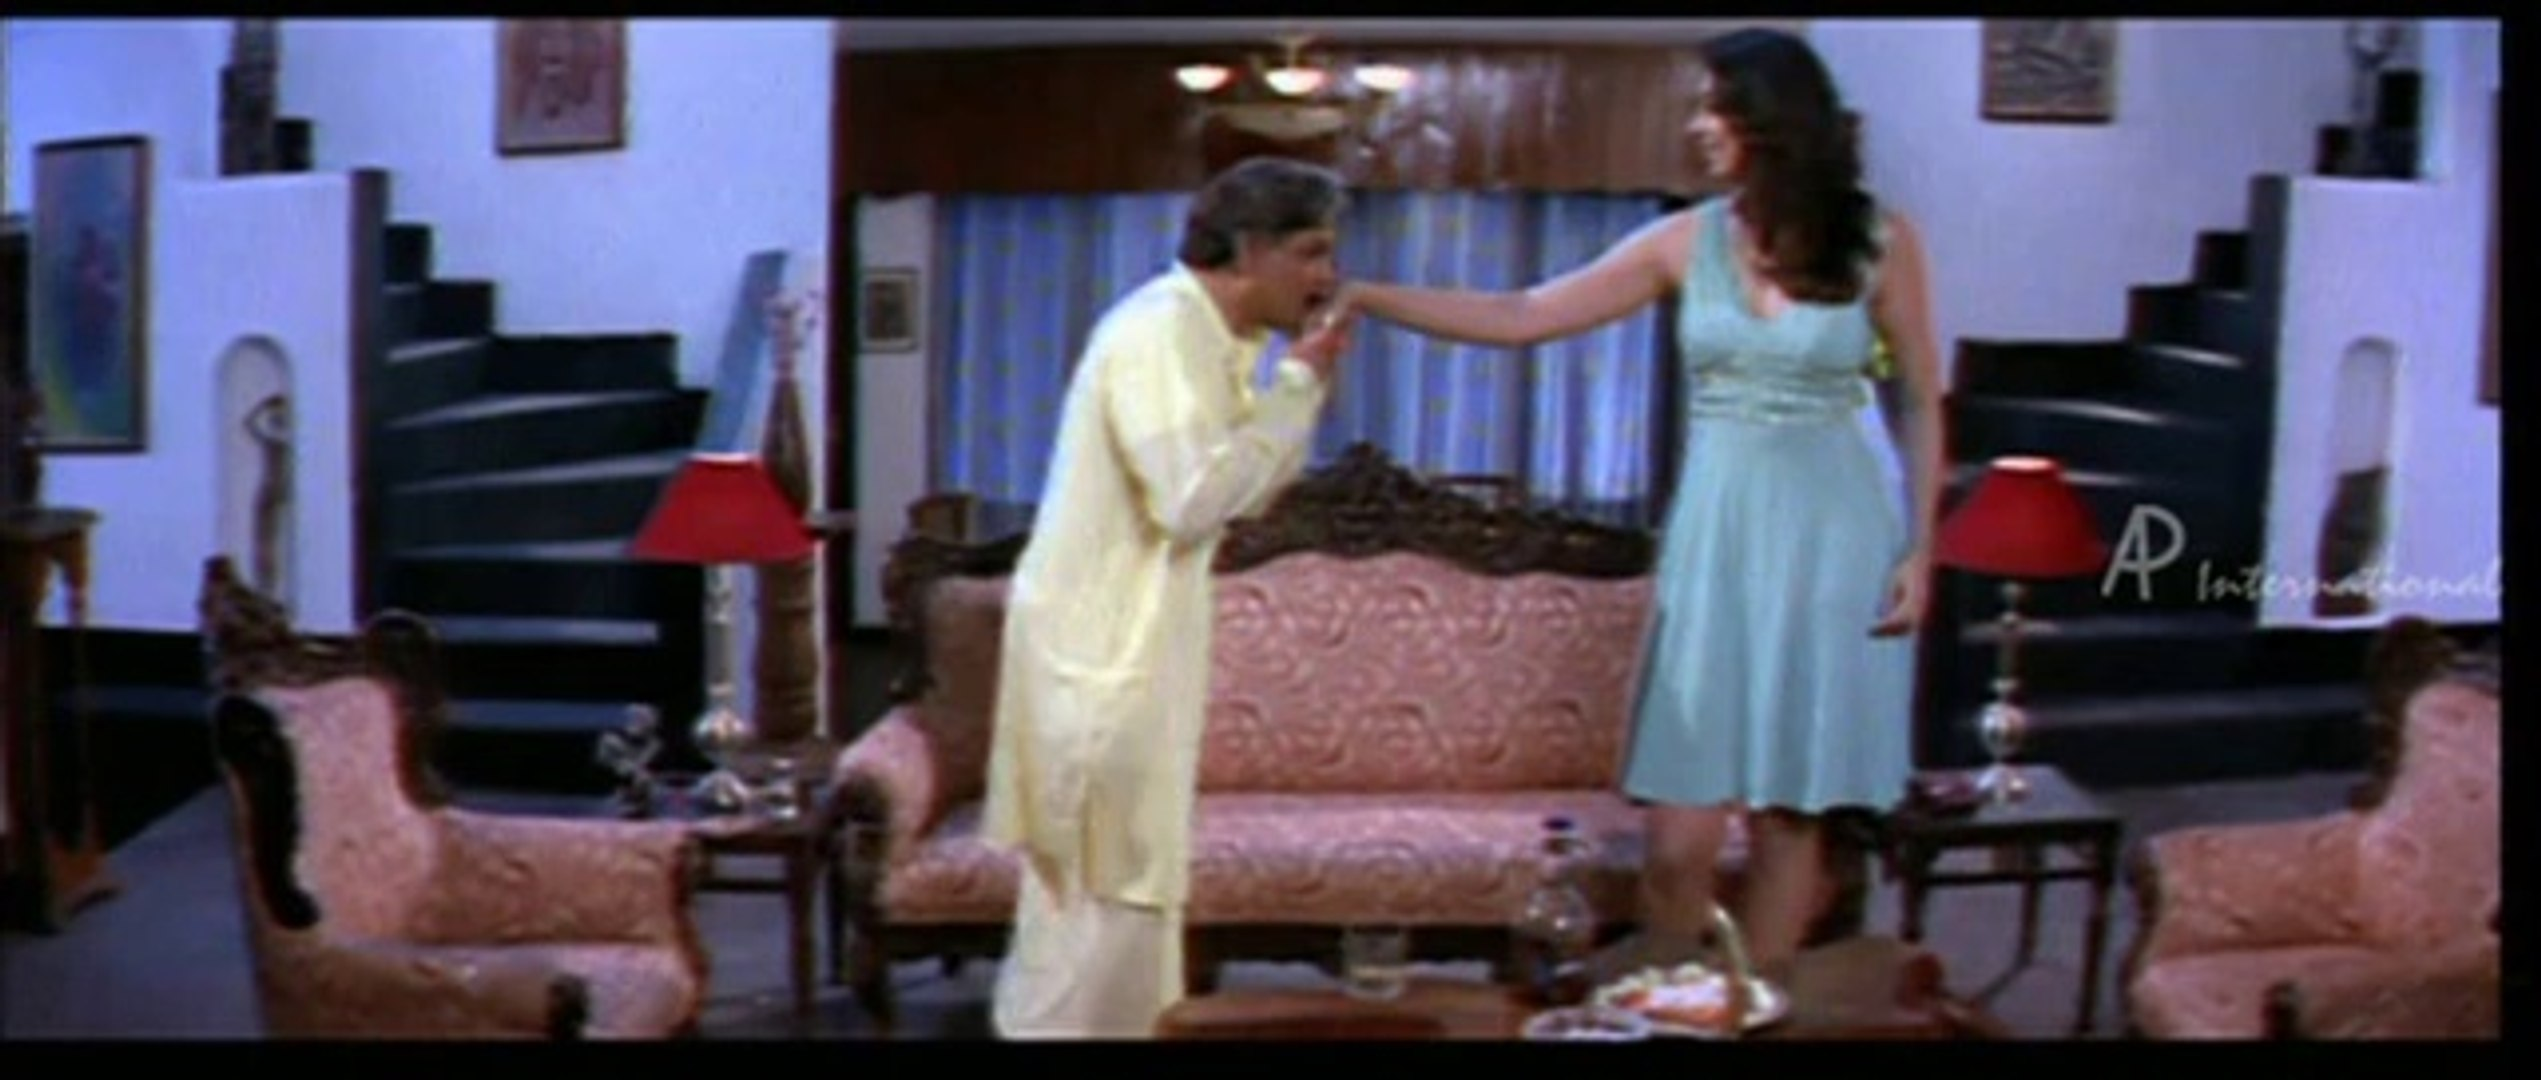 Arangetra Naal Yukta Mookhey Kills Govind Video Dailymotion Submitted 2 months ago by i remember her being really tall and during the film shoots, she wasnt allowed to wear shoes at all in. arangetra naal yukta mookhey kills govind